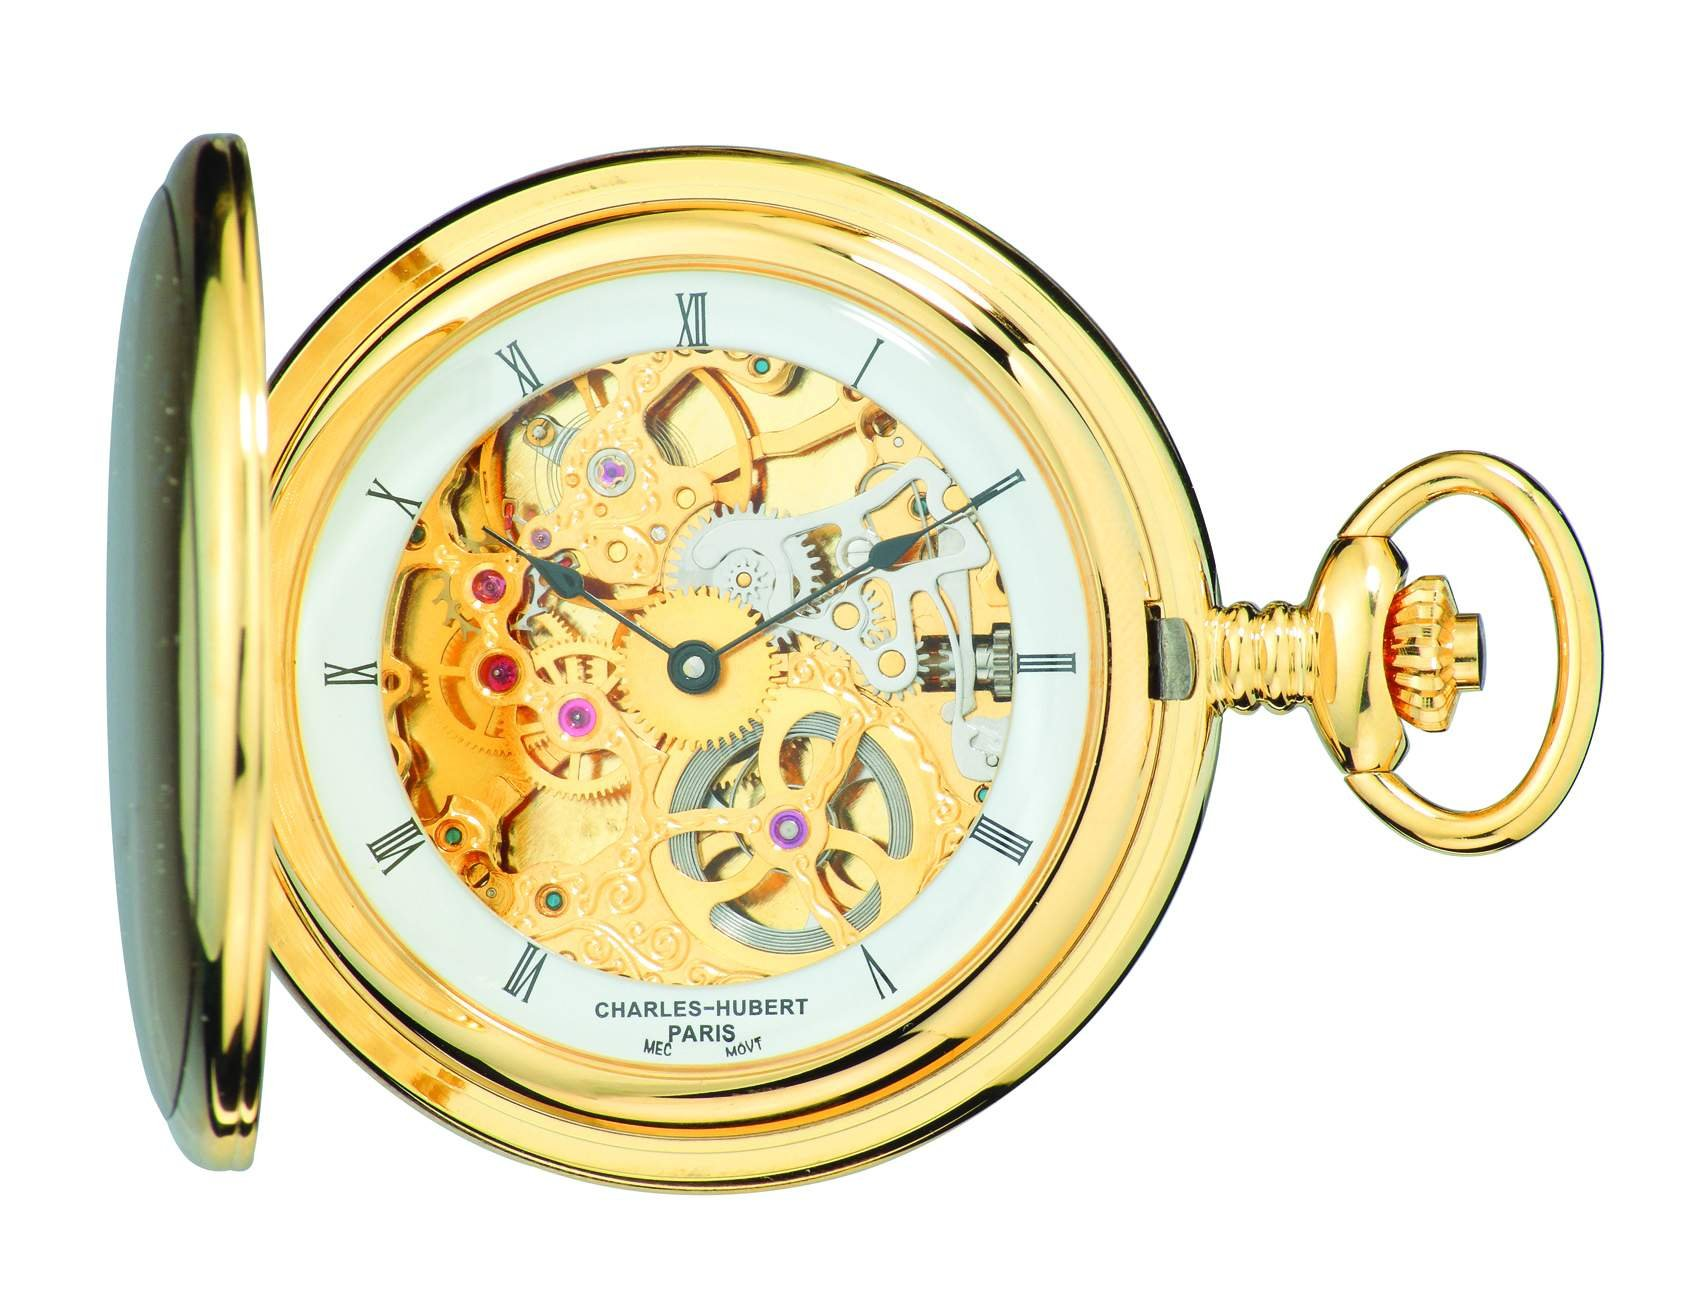 Charles-Hubert, Paris 3906-G Premium Collection Gold-Plated Stainless Steel Satin Finish Hunter Case Mechanical Pocket Watch